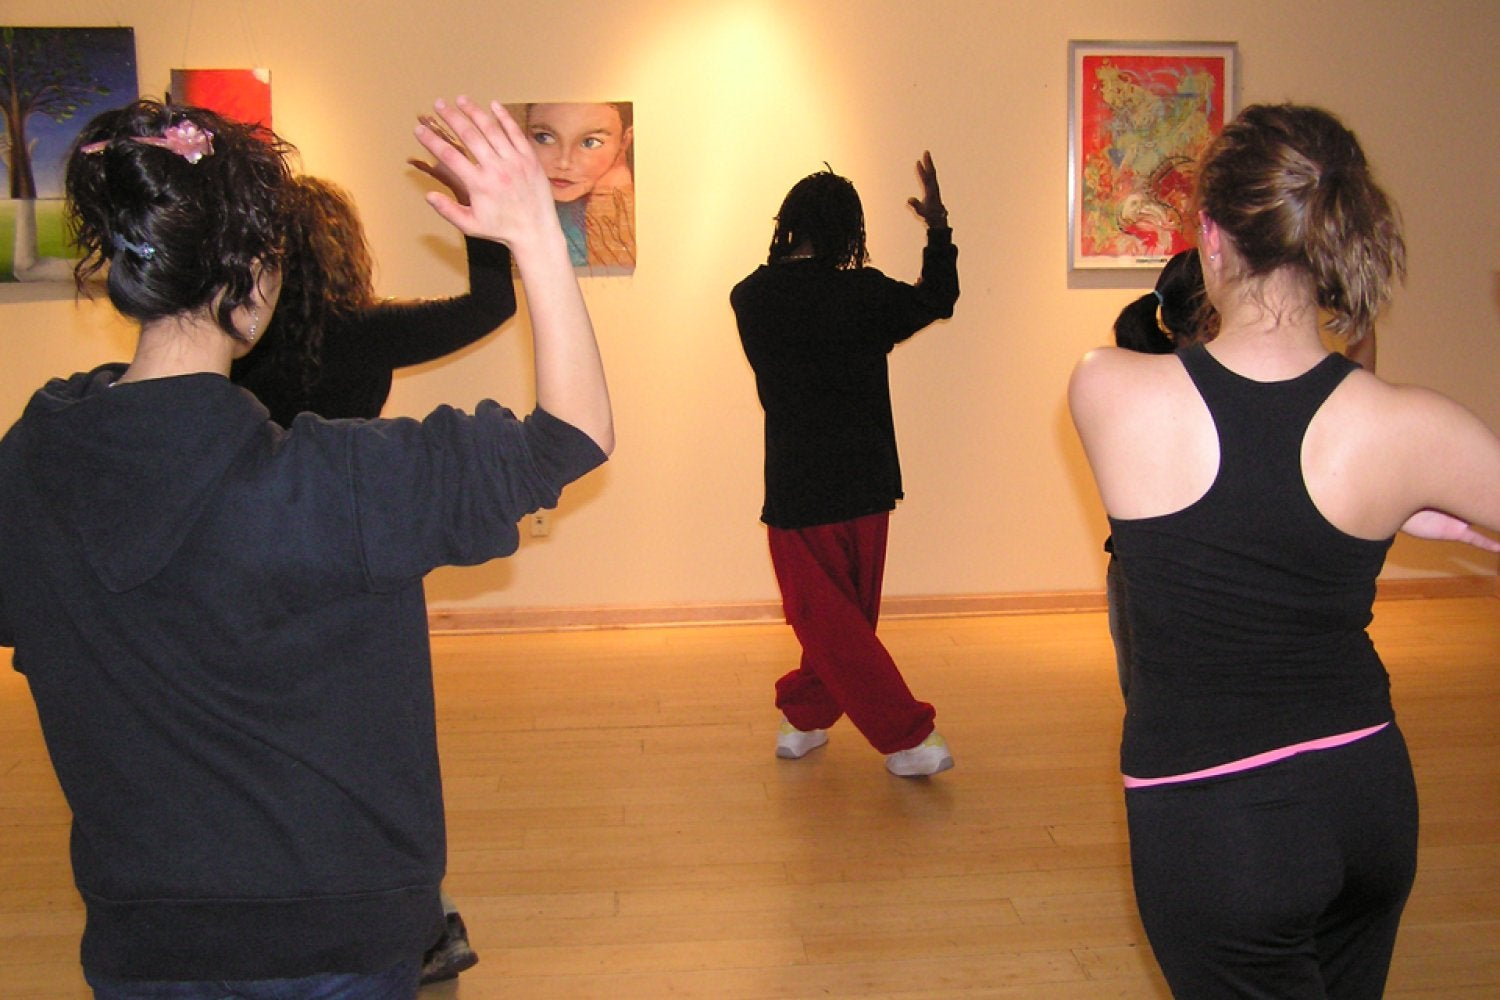 A dance class in the Dennis Small Cultural Center, 4th floor UMC